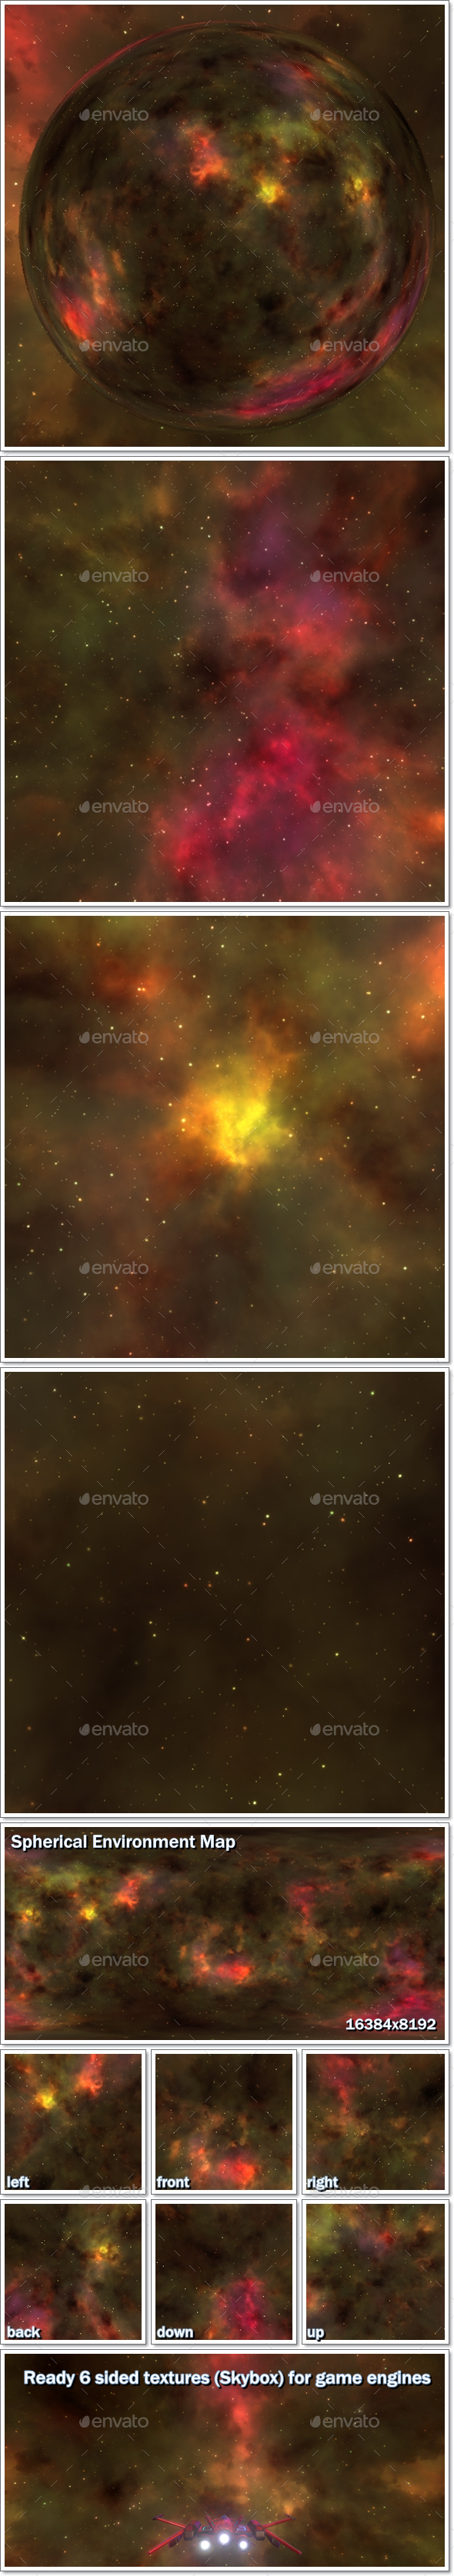 3DOcean Nebula Space Environment HDRI Map 003 20460460